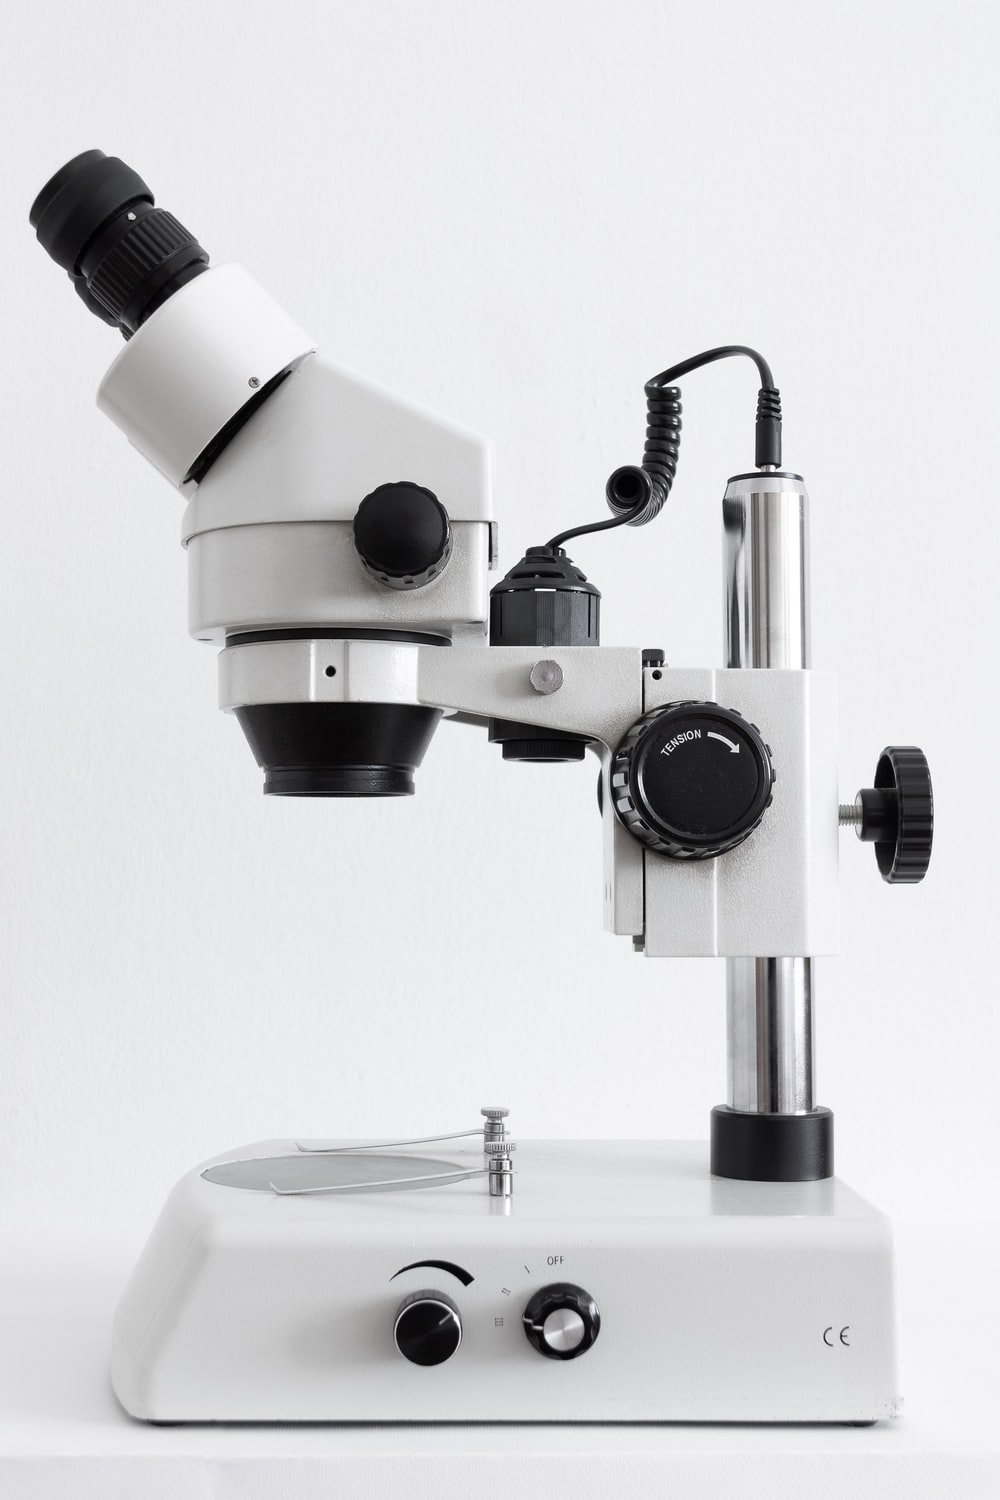 white and black microscope on white surface